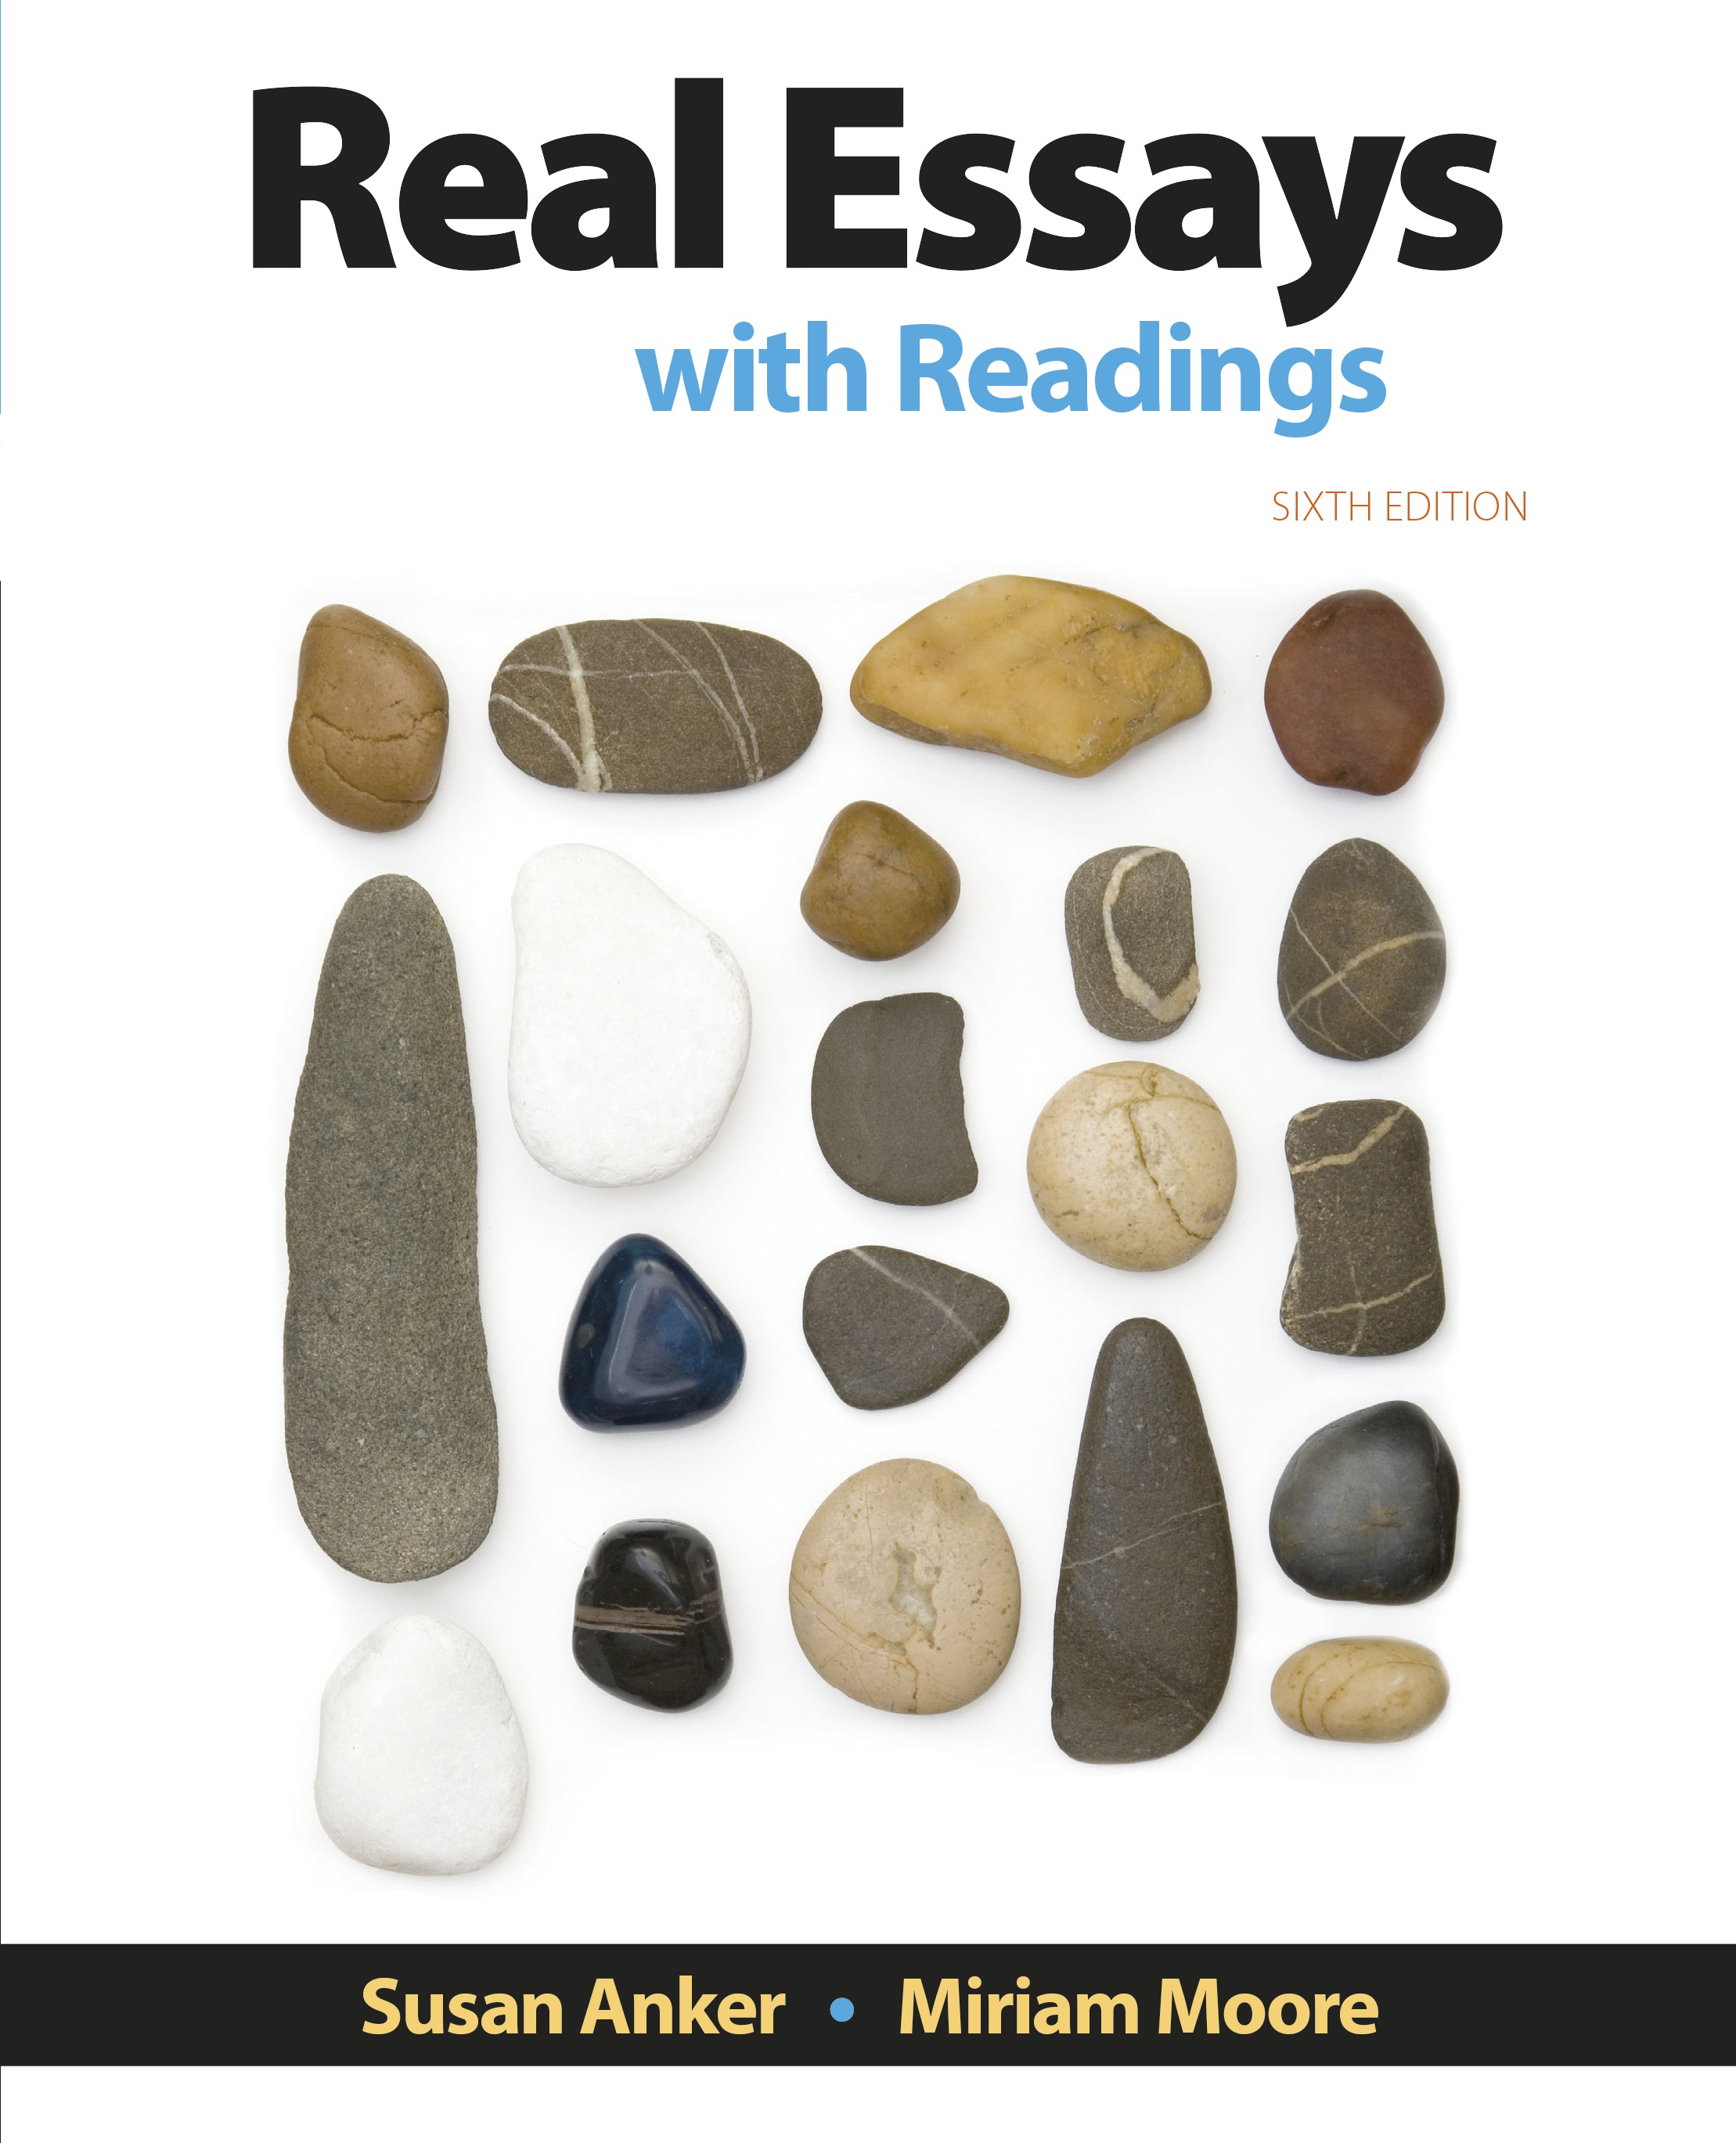 real essays with readings by susan anker fourth edition Buy real essays with readings 4th edition (9780312648084) by susan anker for up to 90% off at textbookscom.